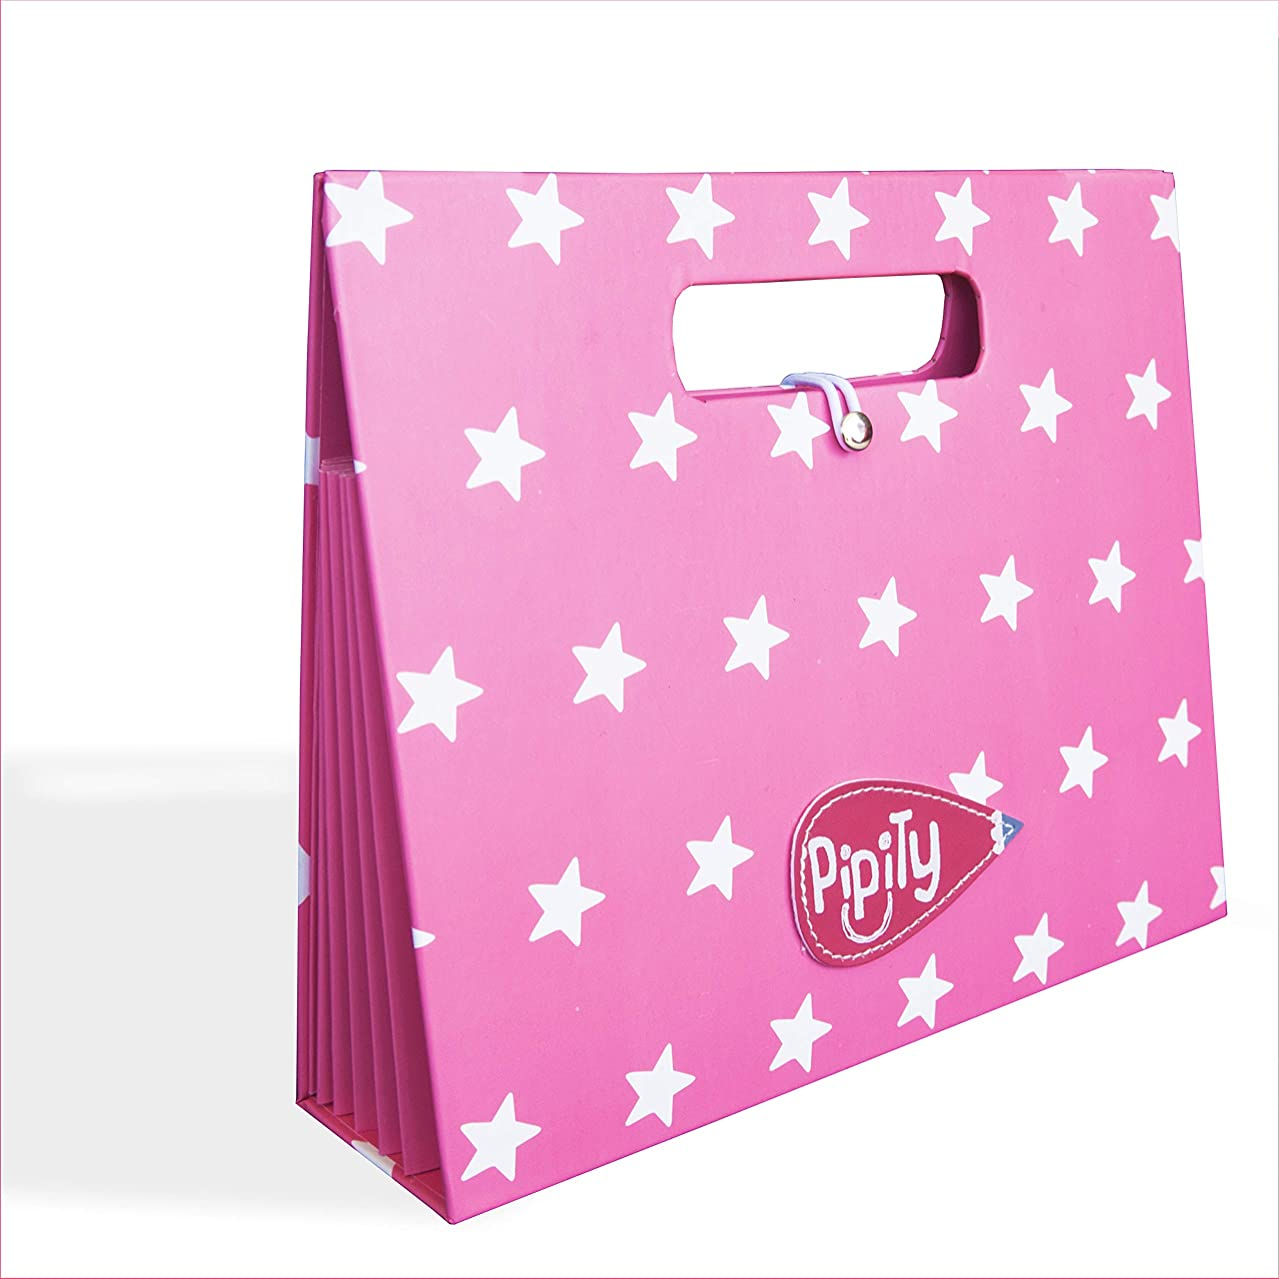 Pipity Portfolio for Artwork Storage. Expandable Folder Makes a Great Art Case for Kids Creative Keepsake Projects. Portfolios Make Perfect Presents for a Busy Artist. Girls and Boys Age 6+. Pink A5